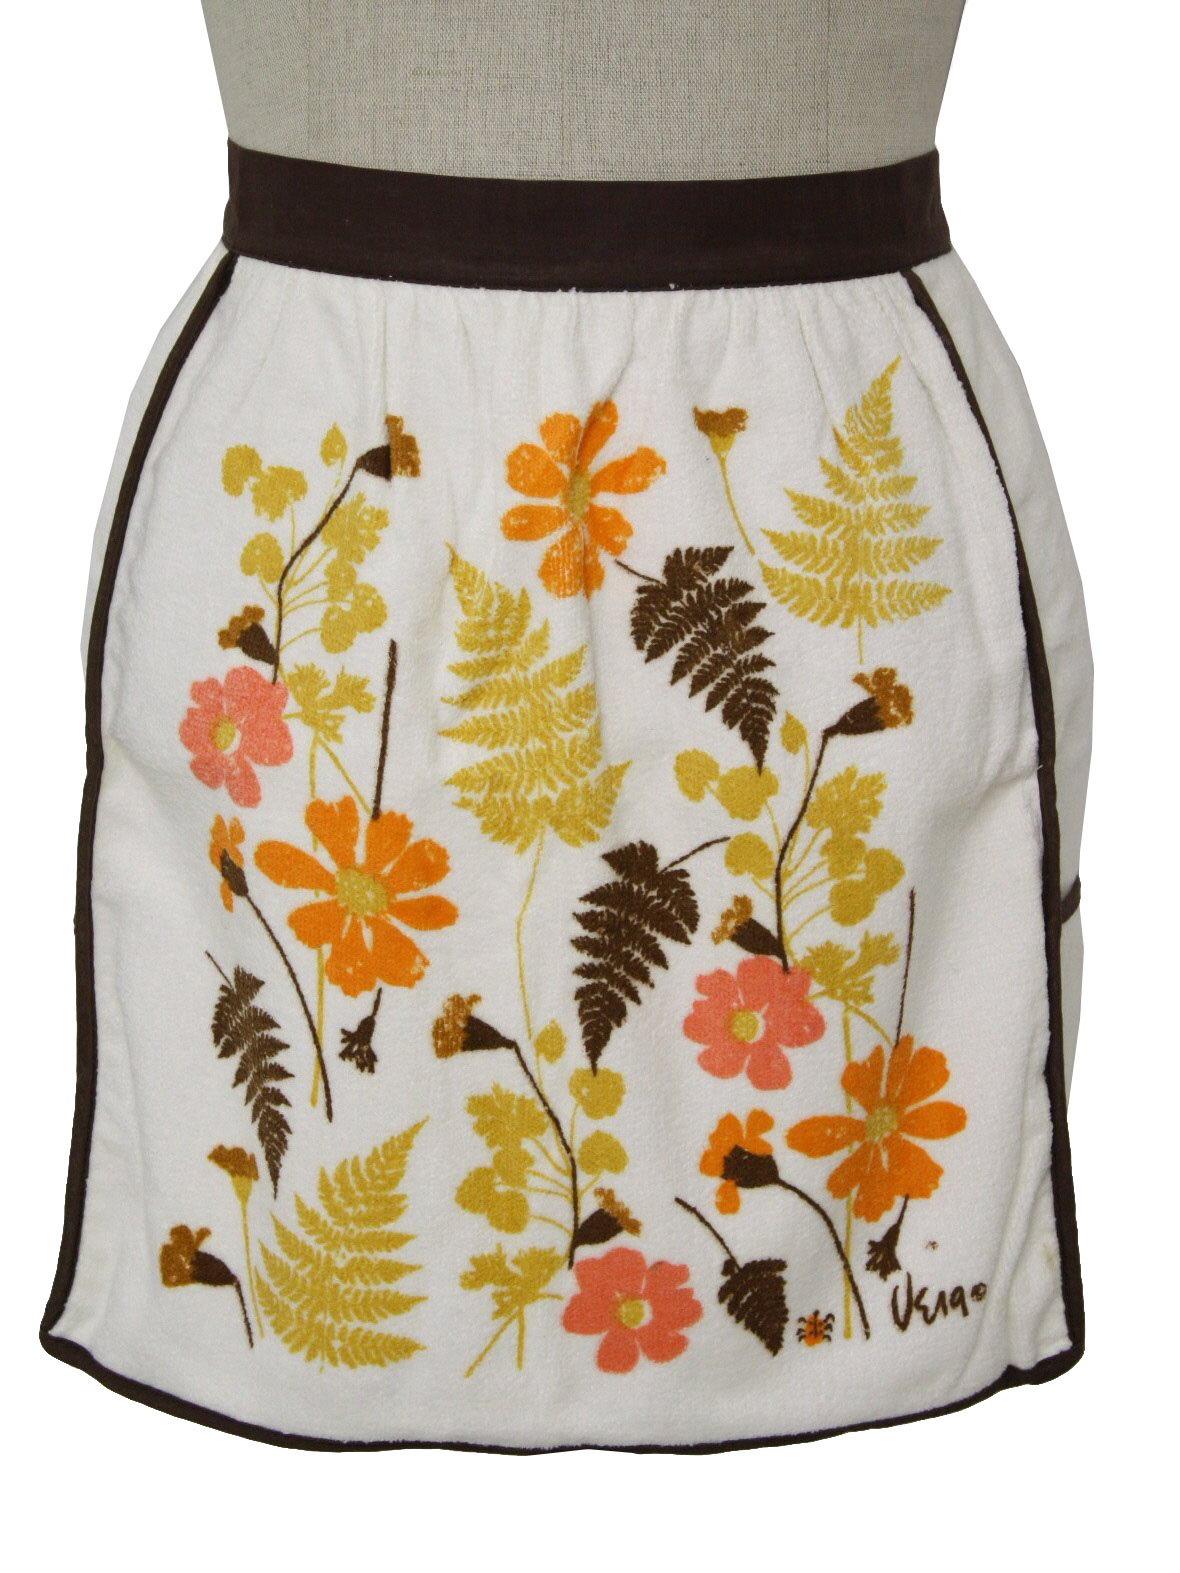 White half apron vintage - Vintage 60s Apron 60s Vera Designer Womens New Old Off White Dark Brown Gold Orange Coral Pink Ochre Flowers And Leaves Screen Print Cotton Terry